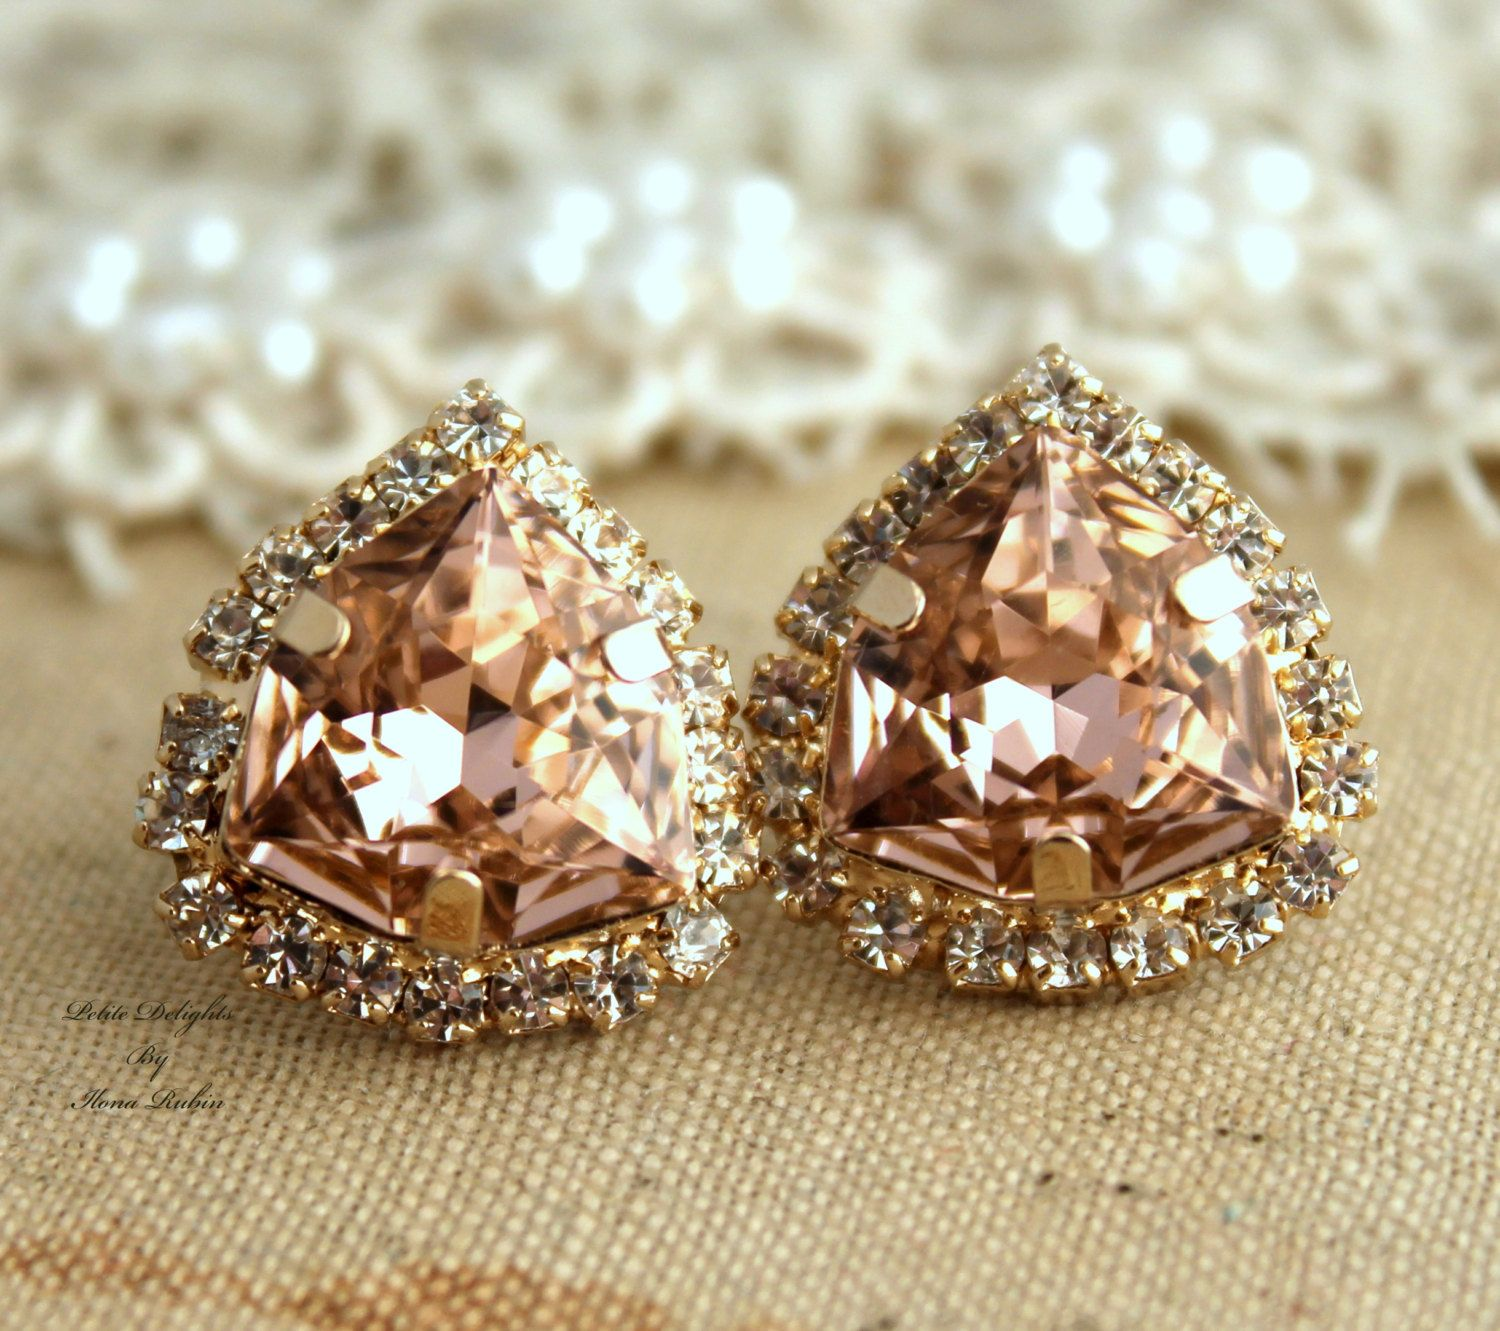 Vintage Blush Pink Swarovski Rhinestone Crystal Stud Earring Sparkling Gemstone Wedding Post Jewelry Gift For Bridal Or Bridemaid